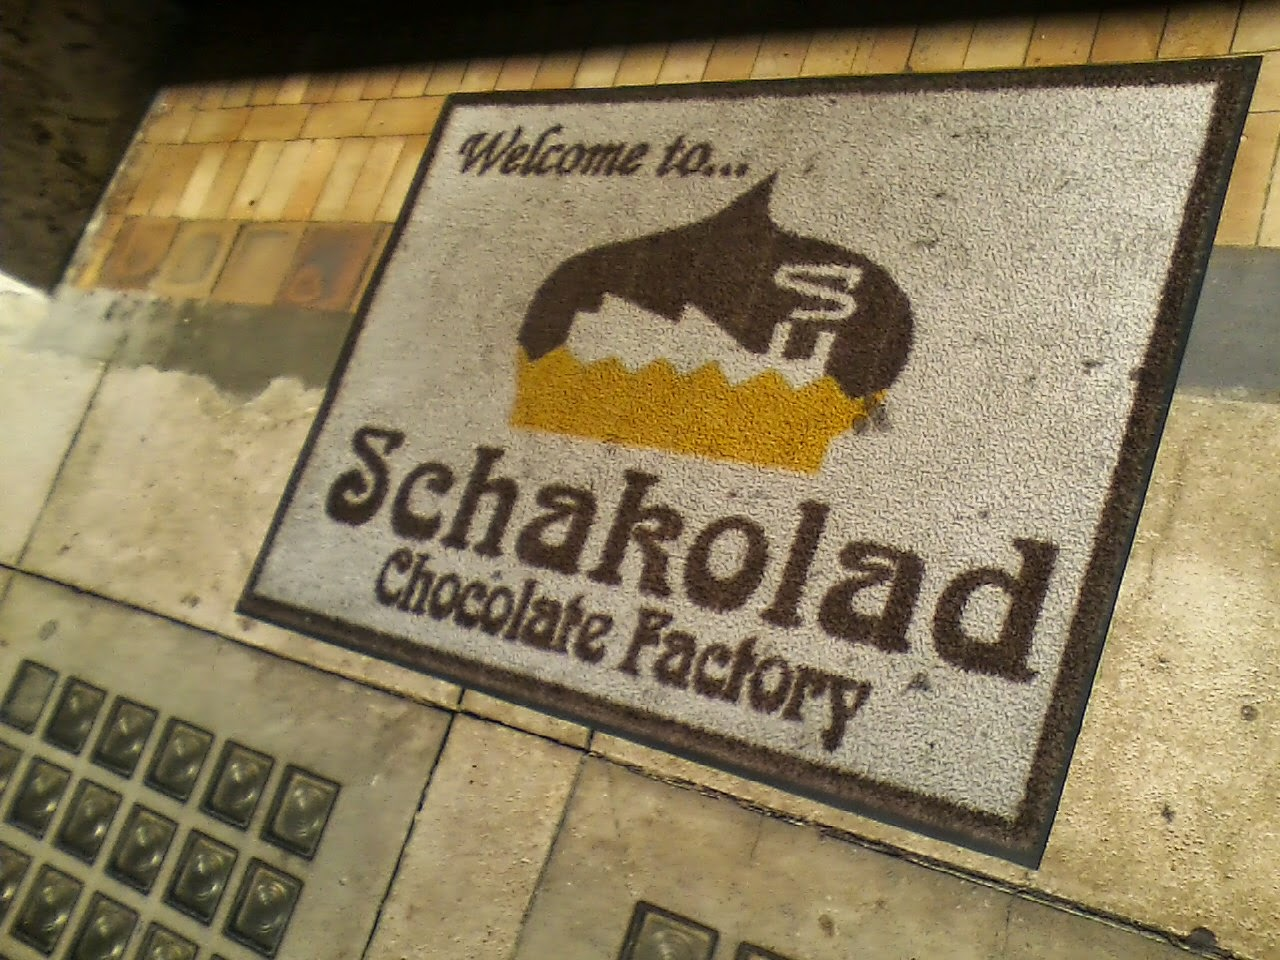 Schakolad Chocolate Factory Images - Reverse Search